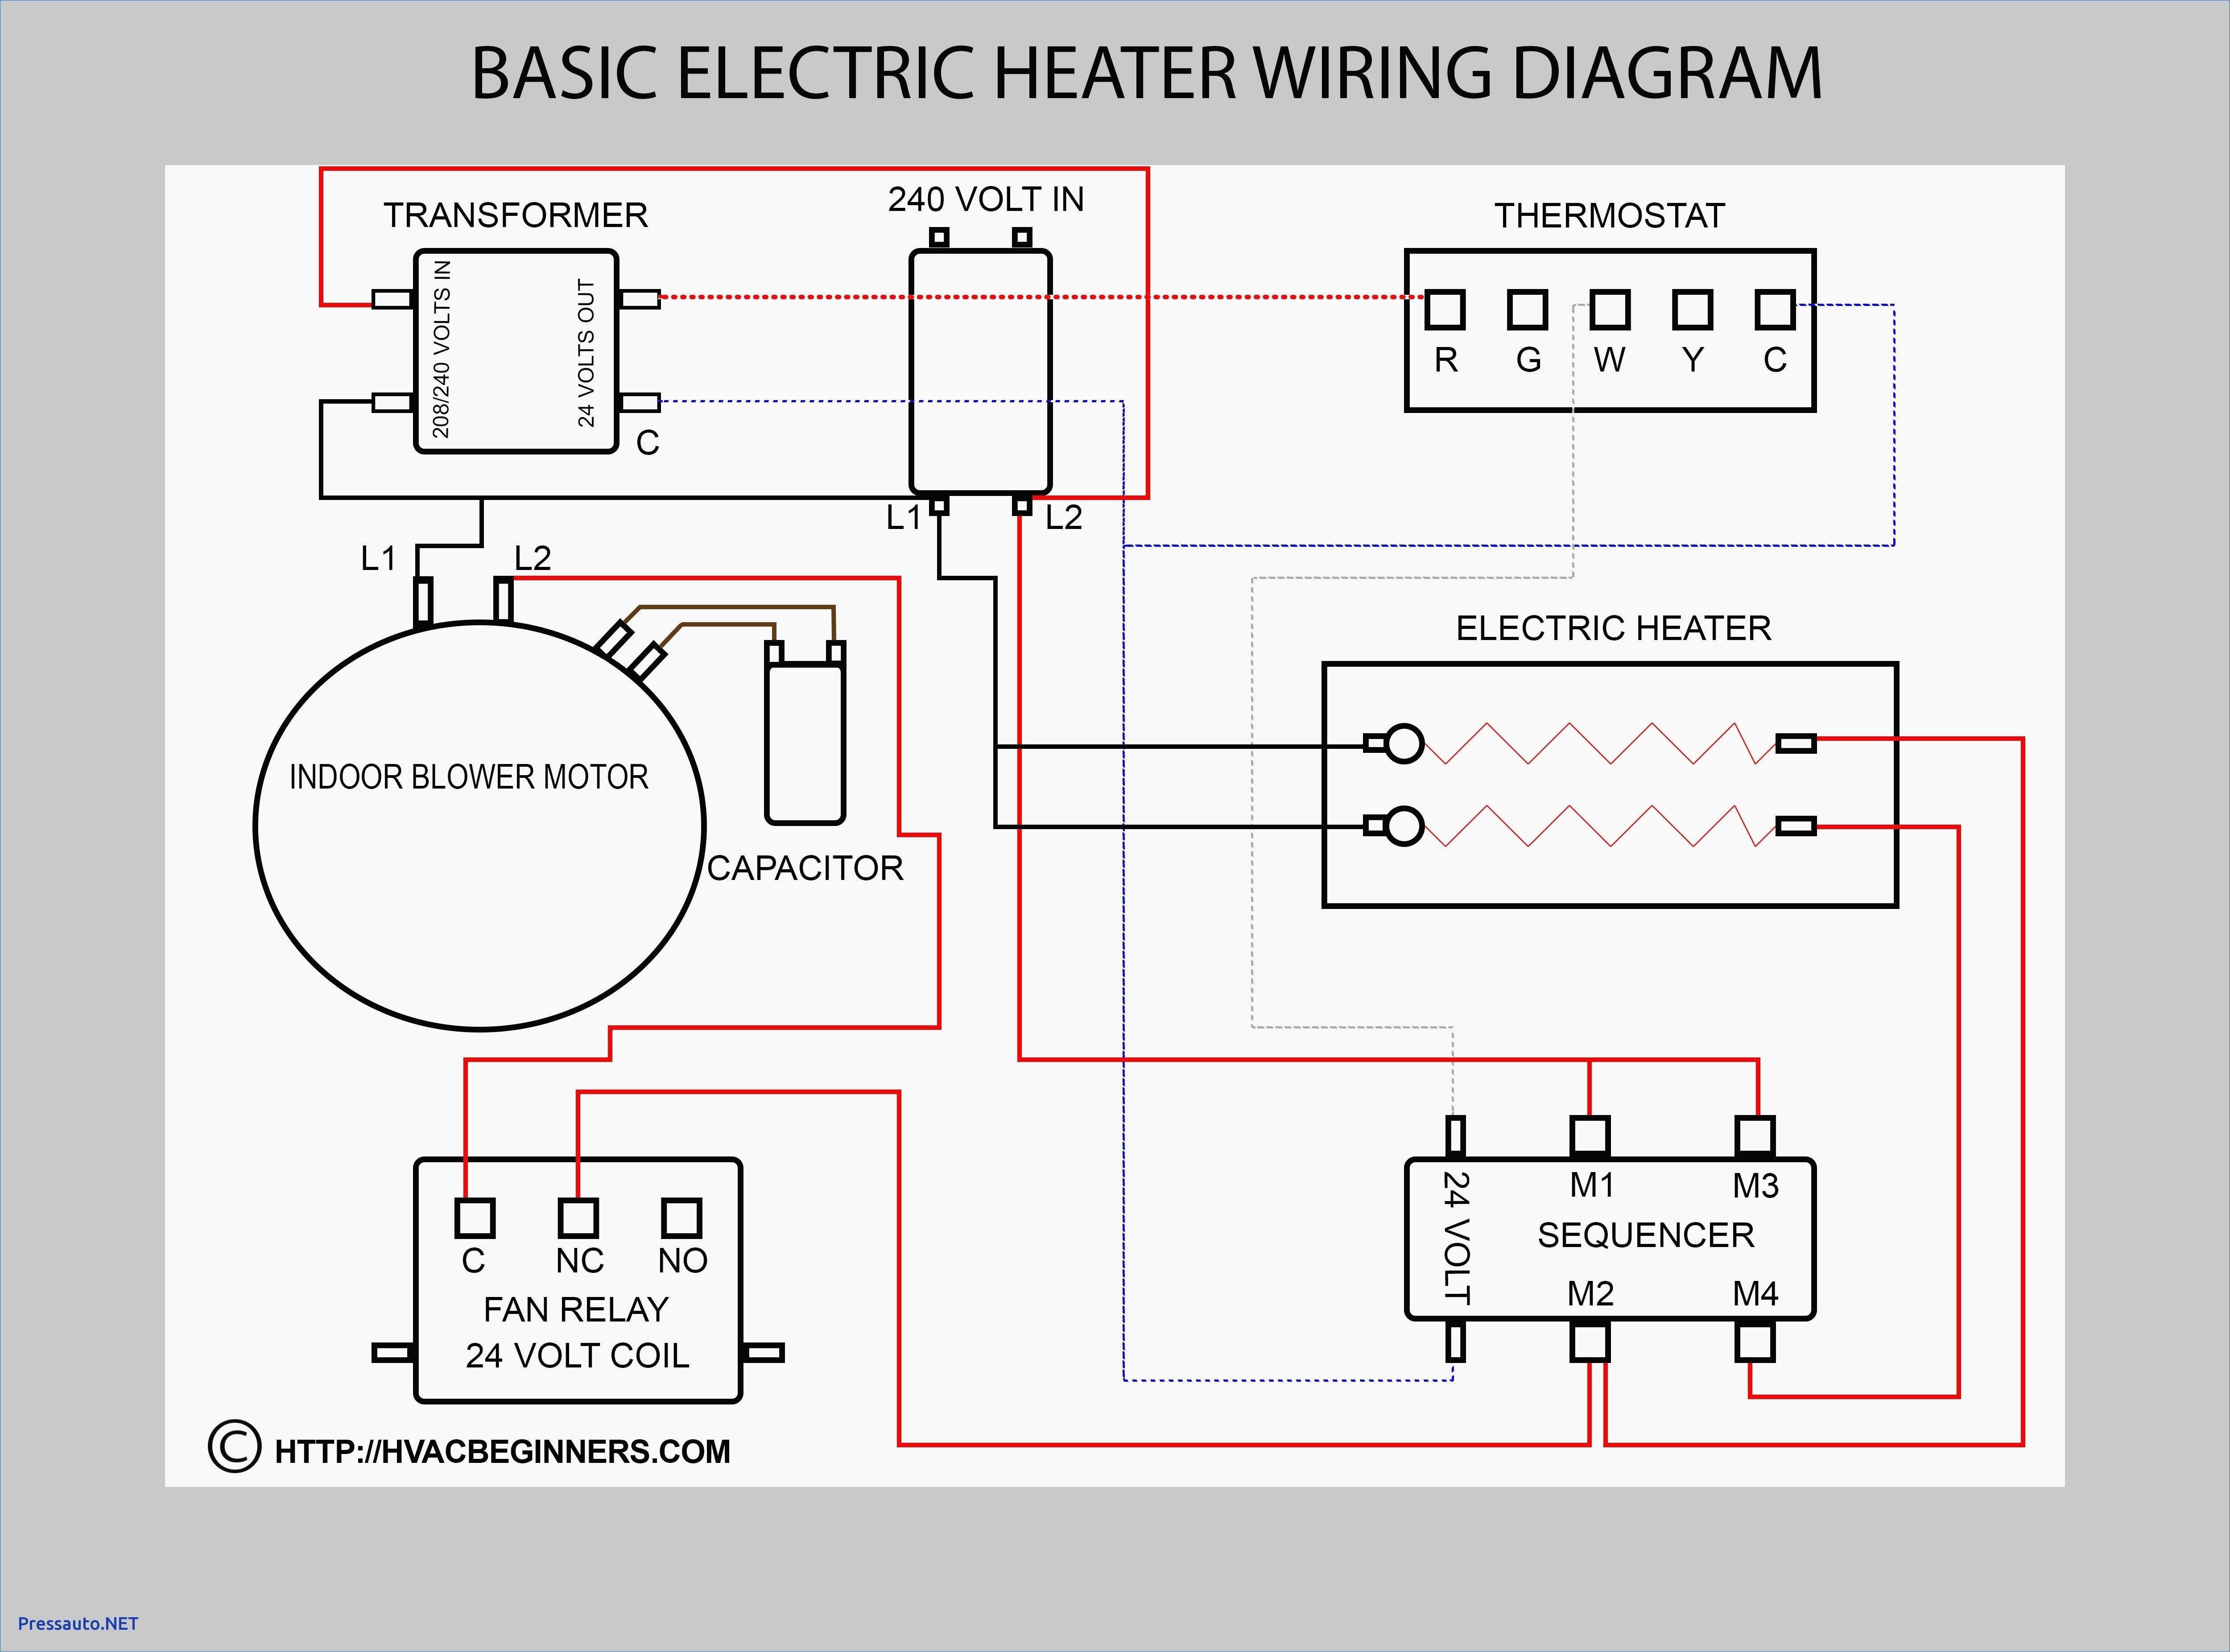 home thermostat wiring diagram Download-Wiring Diagram Pics Detail Name house thermostat 17-t